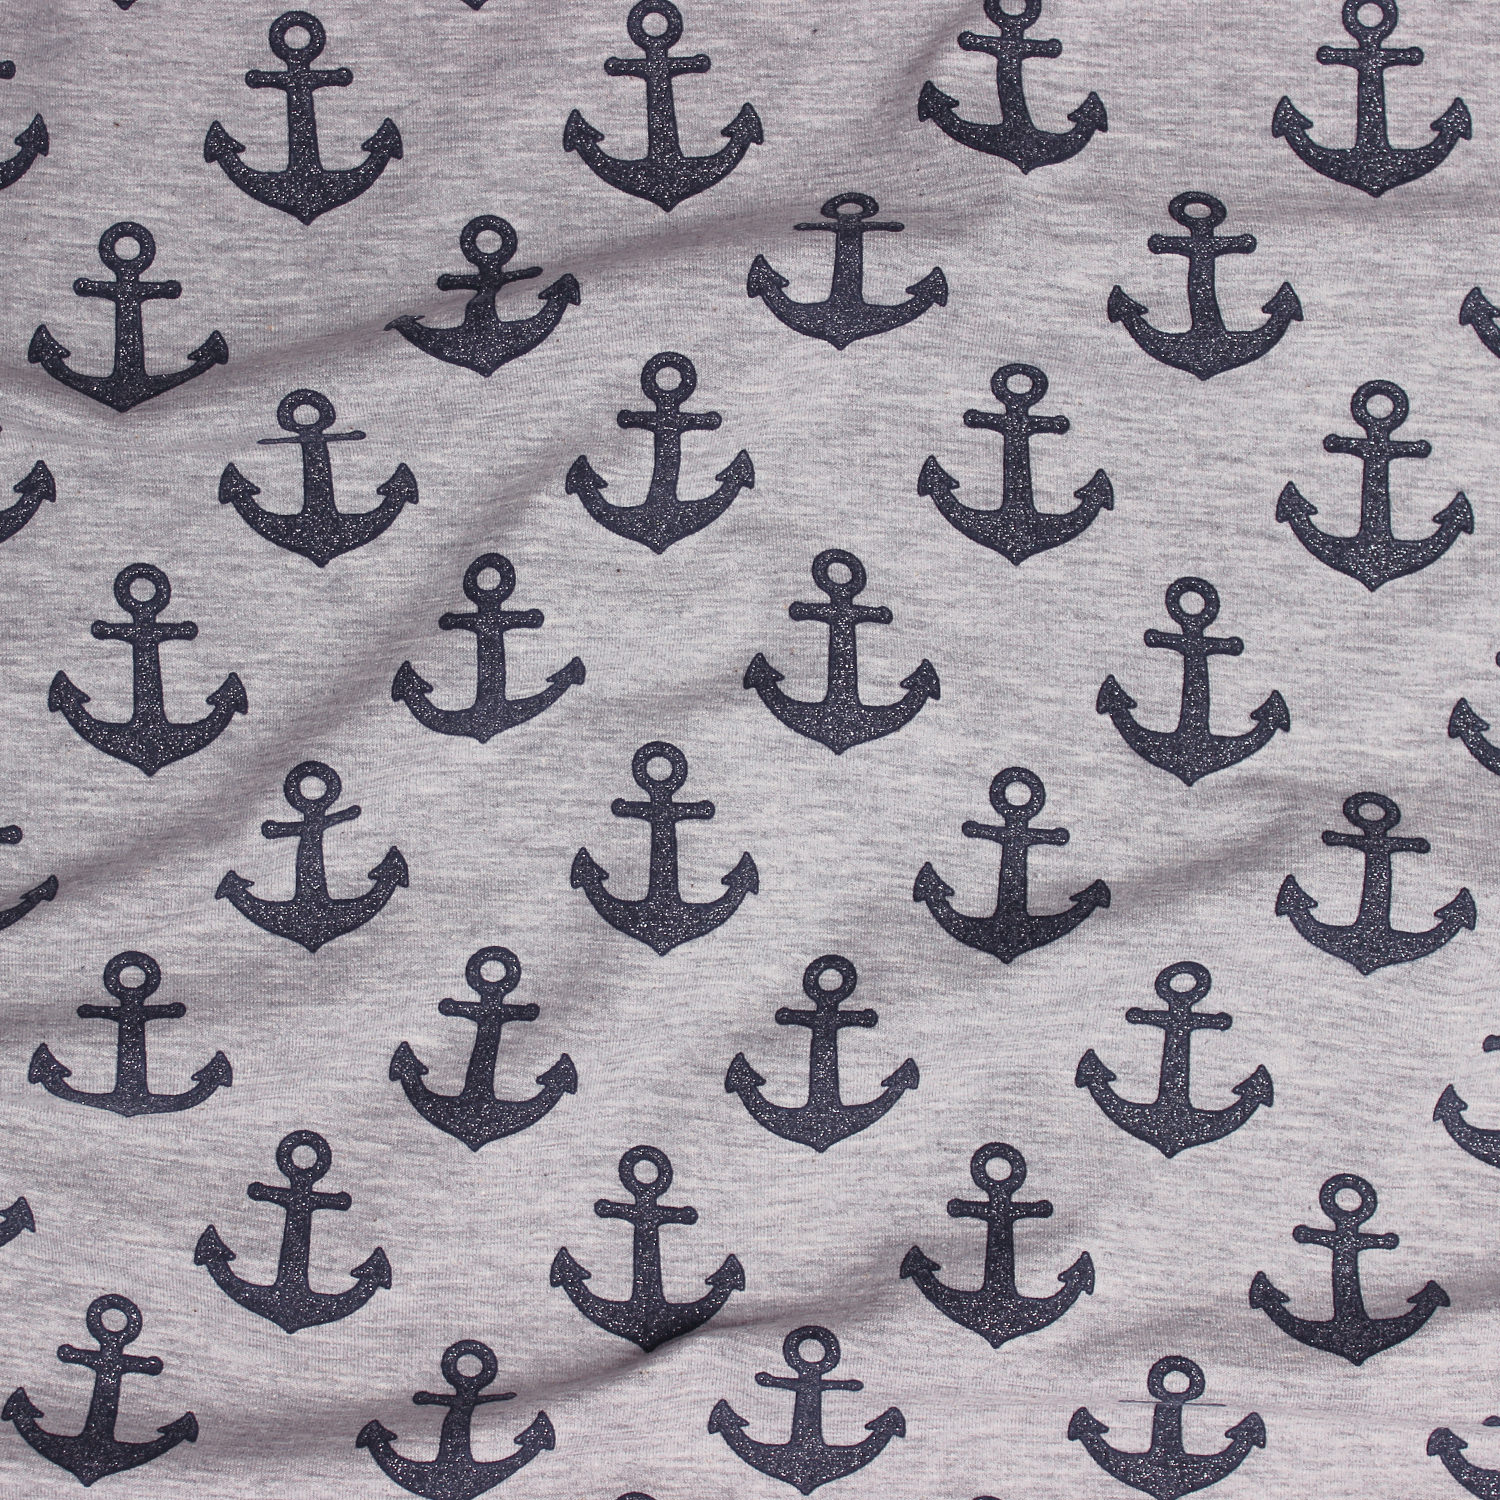 - Jersey French Terry Glitzer Anker Textil Bekleidungsstoff - Jersey French Terry Glitzer Anker Textil Bekleidungsstoff